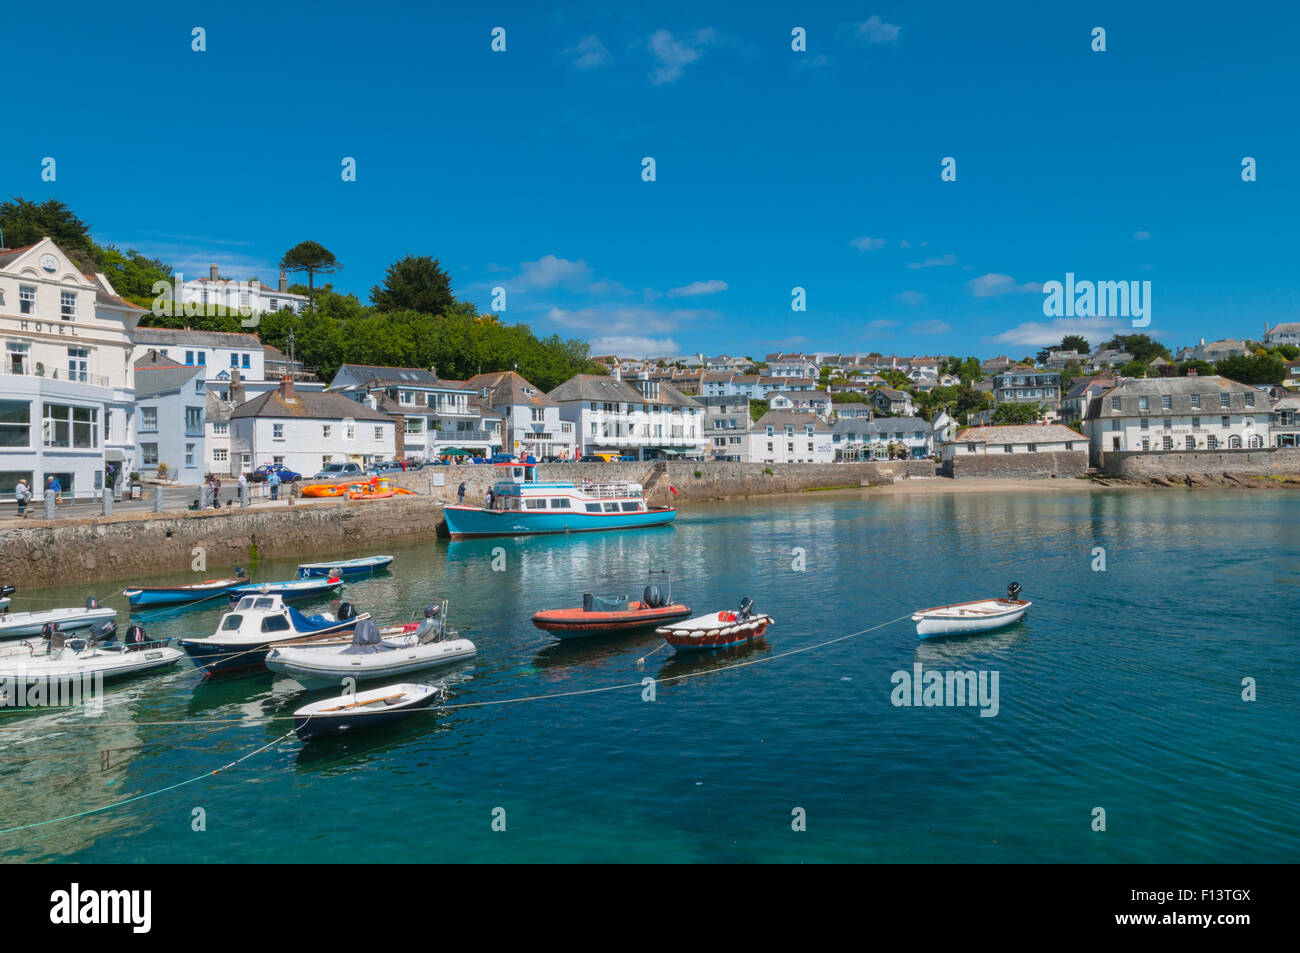 Barche a St Mawes Harbour St Mawes Cornwall Inghilterra Immagini Stock